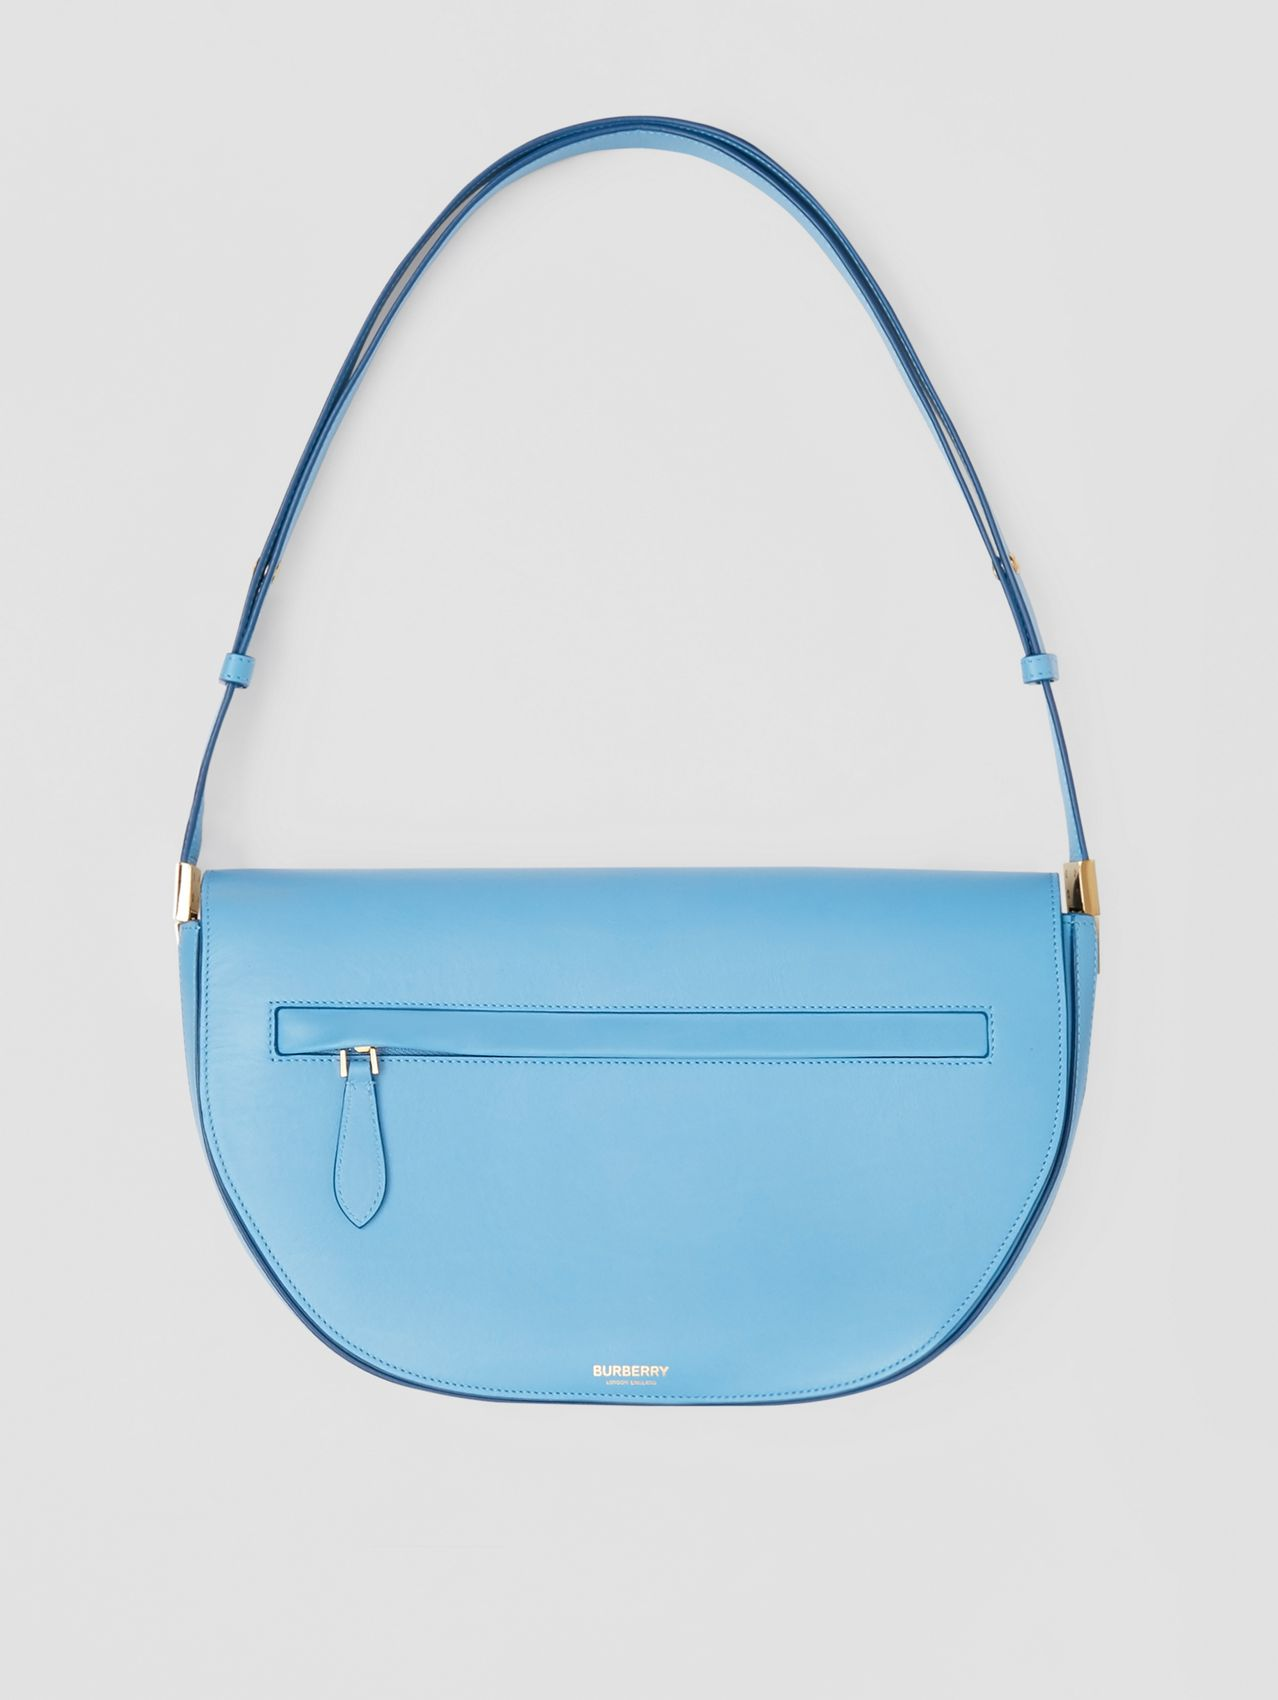 Medium Leather Olympia Bag in Blue Topaz